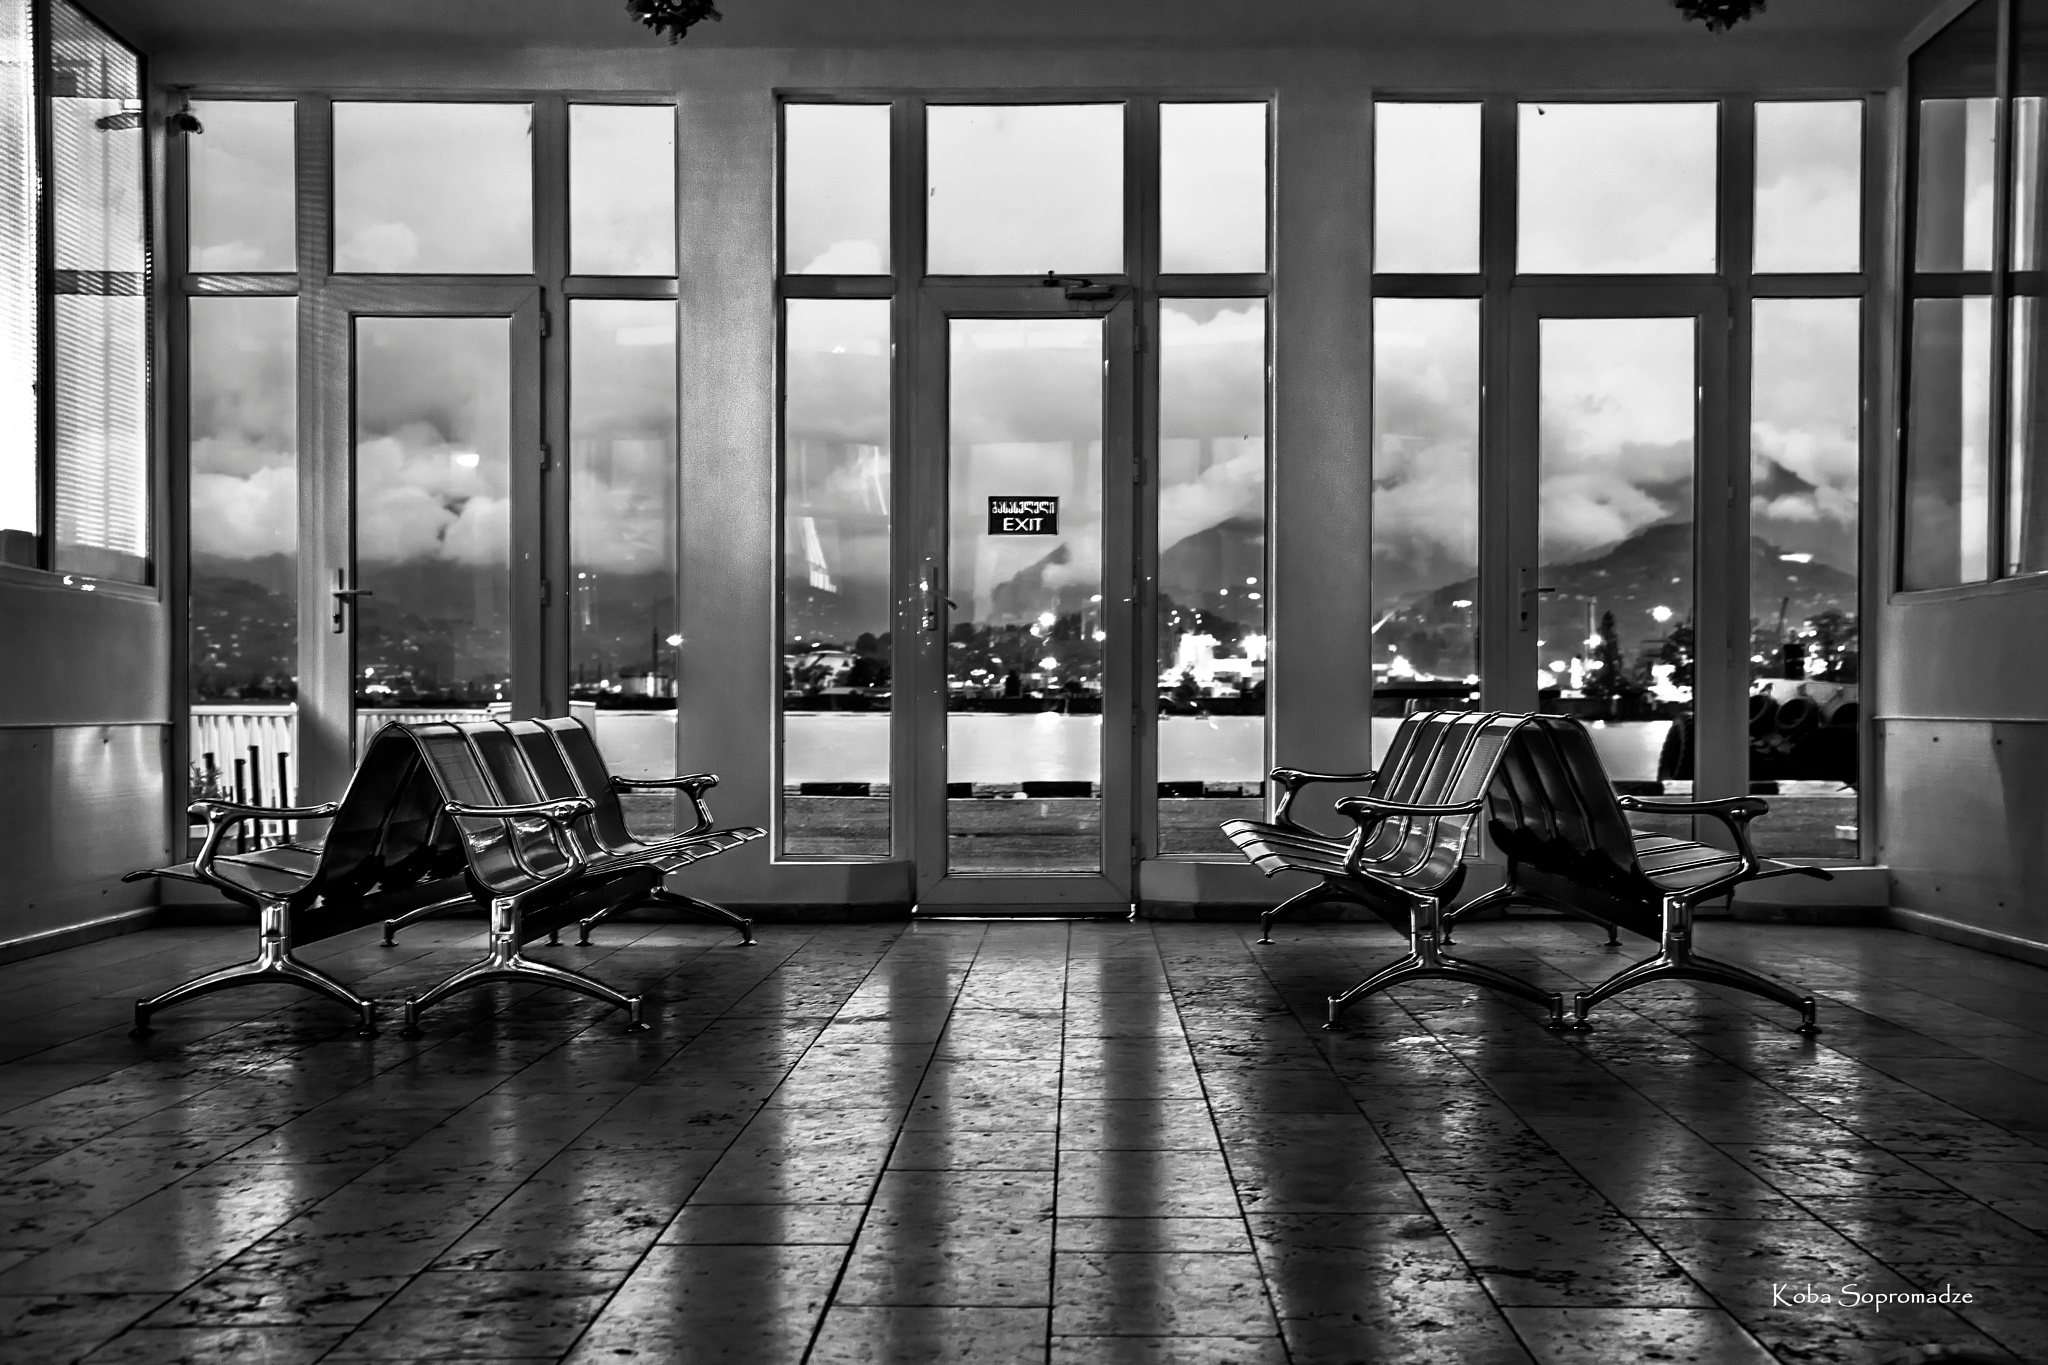 Waiting room at night in the port  by Koba Sopromadze